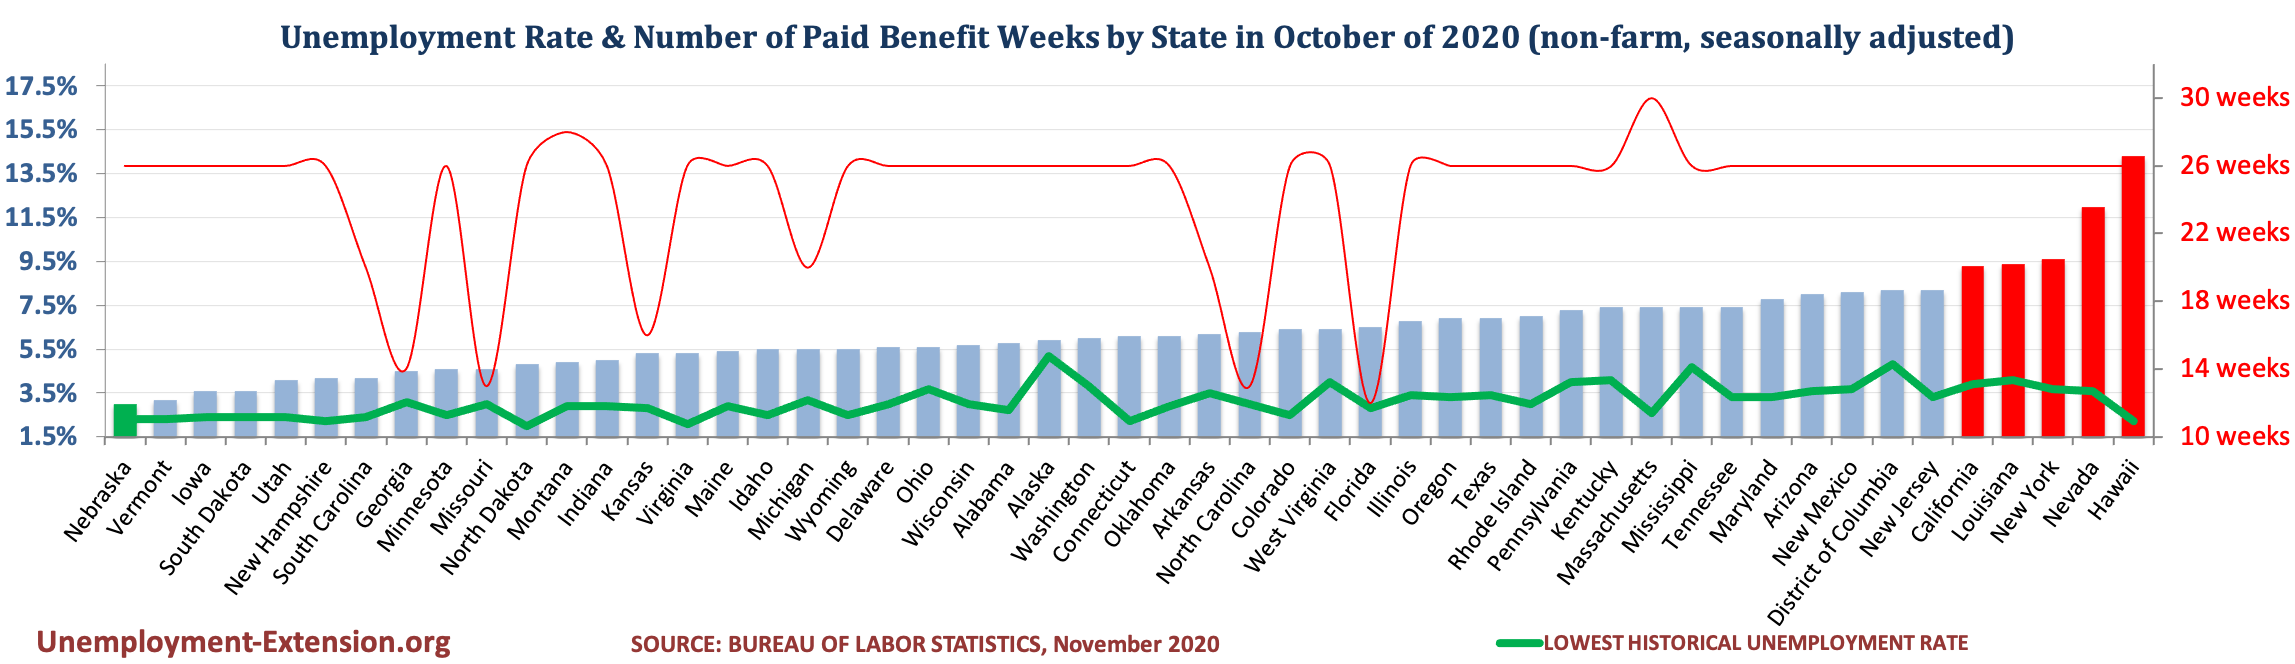 Unemployment Rate and Number of Paid Unemployment Benefit weeks by State (non-farm, seasonally adjusted) in October of 2020